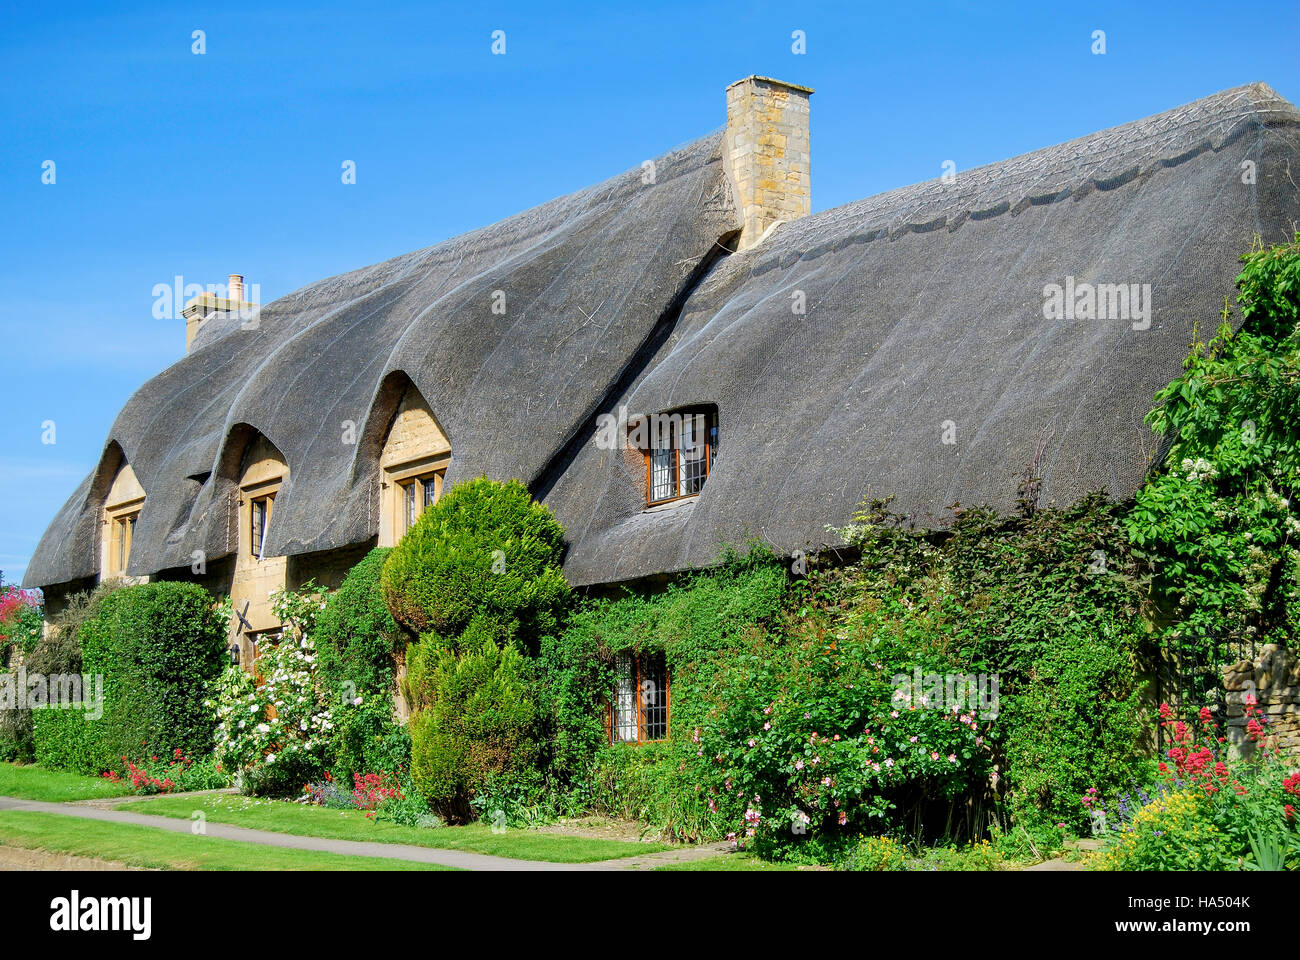 Thatched Cottages Chipping Campden Cotswolds Gloucestershire England United Kingdom